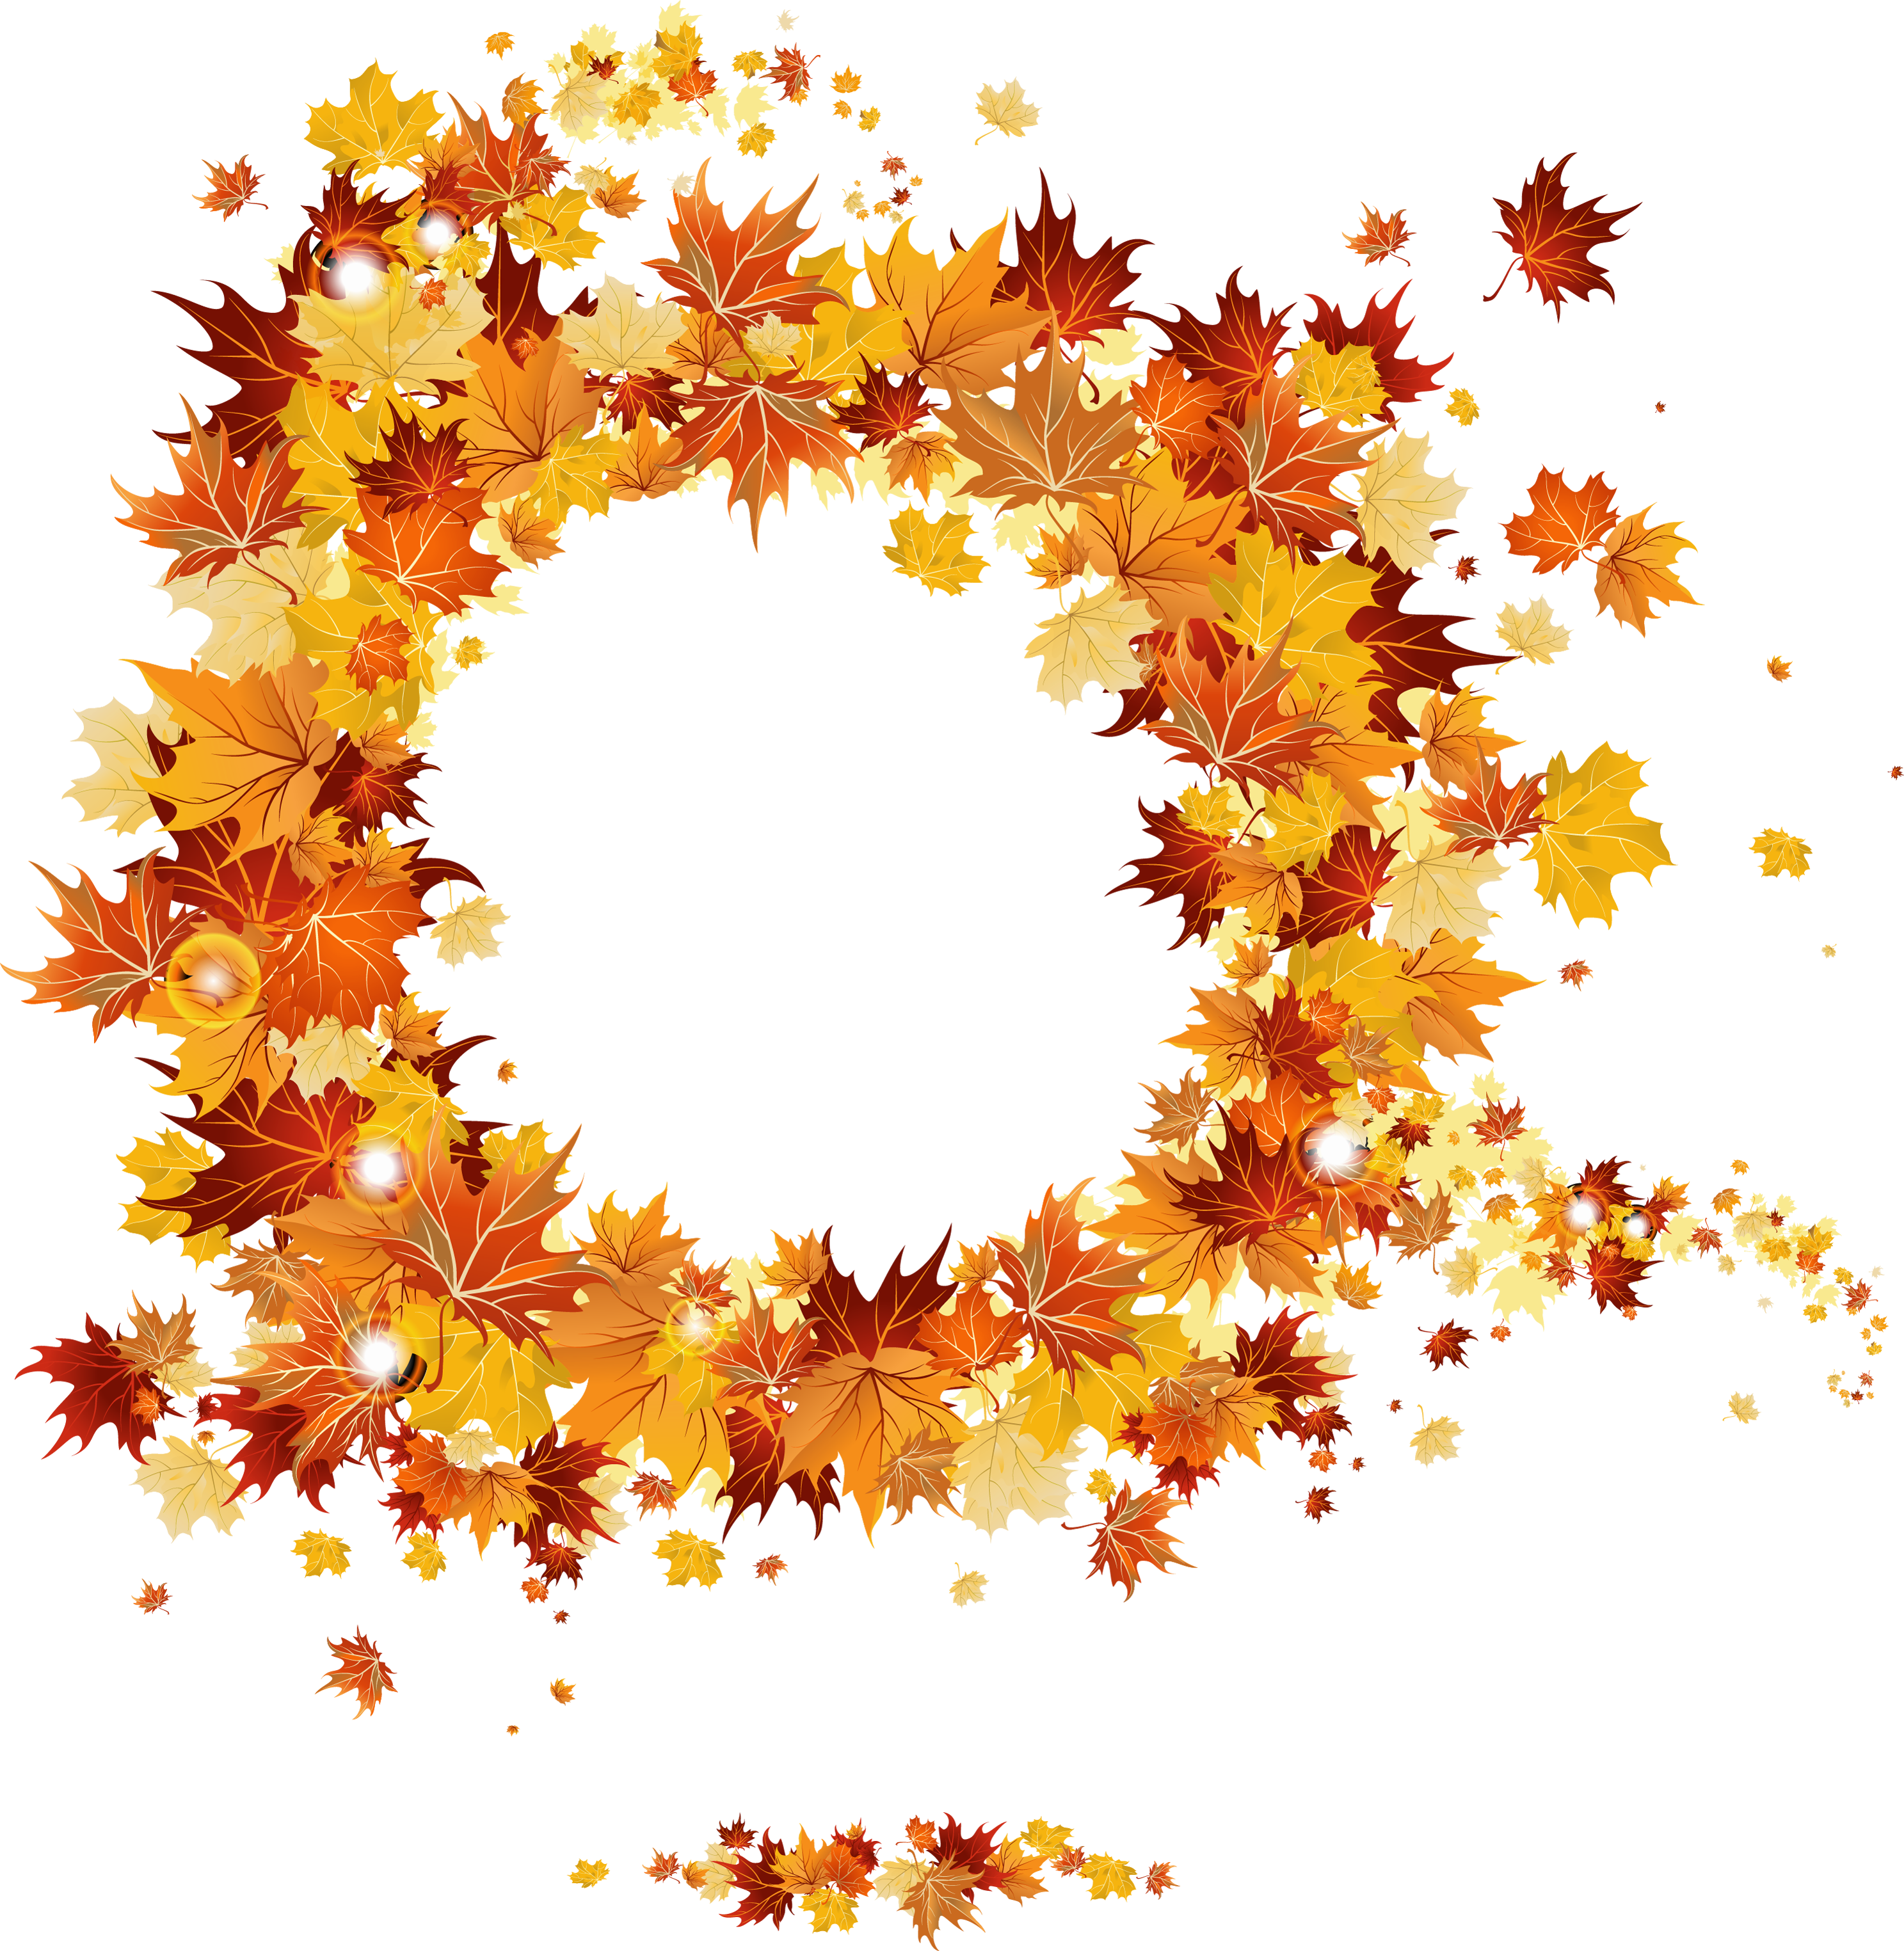 Fall png images. Round vector frame gallery